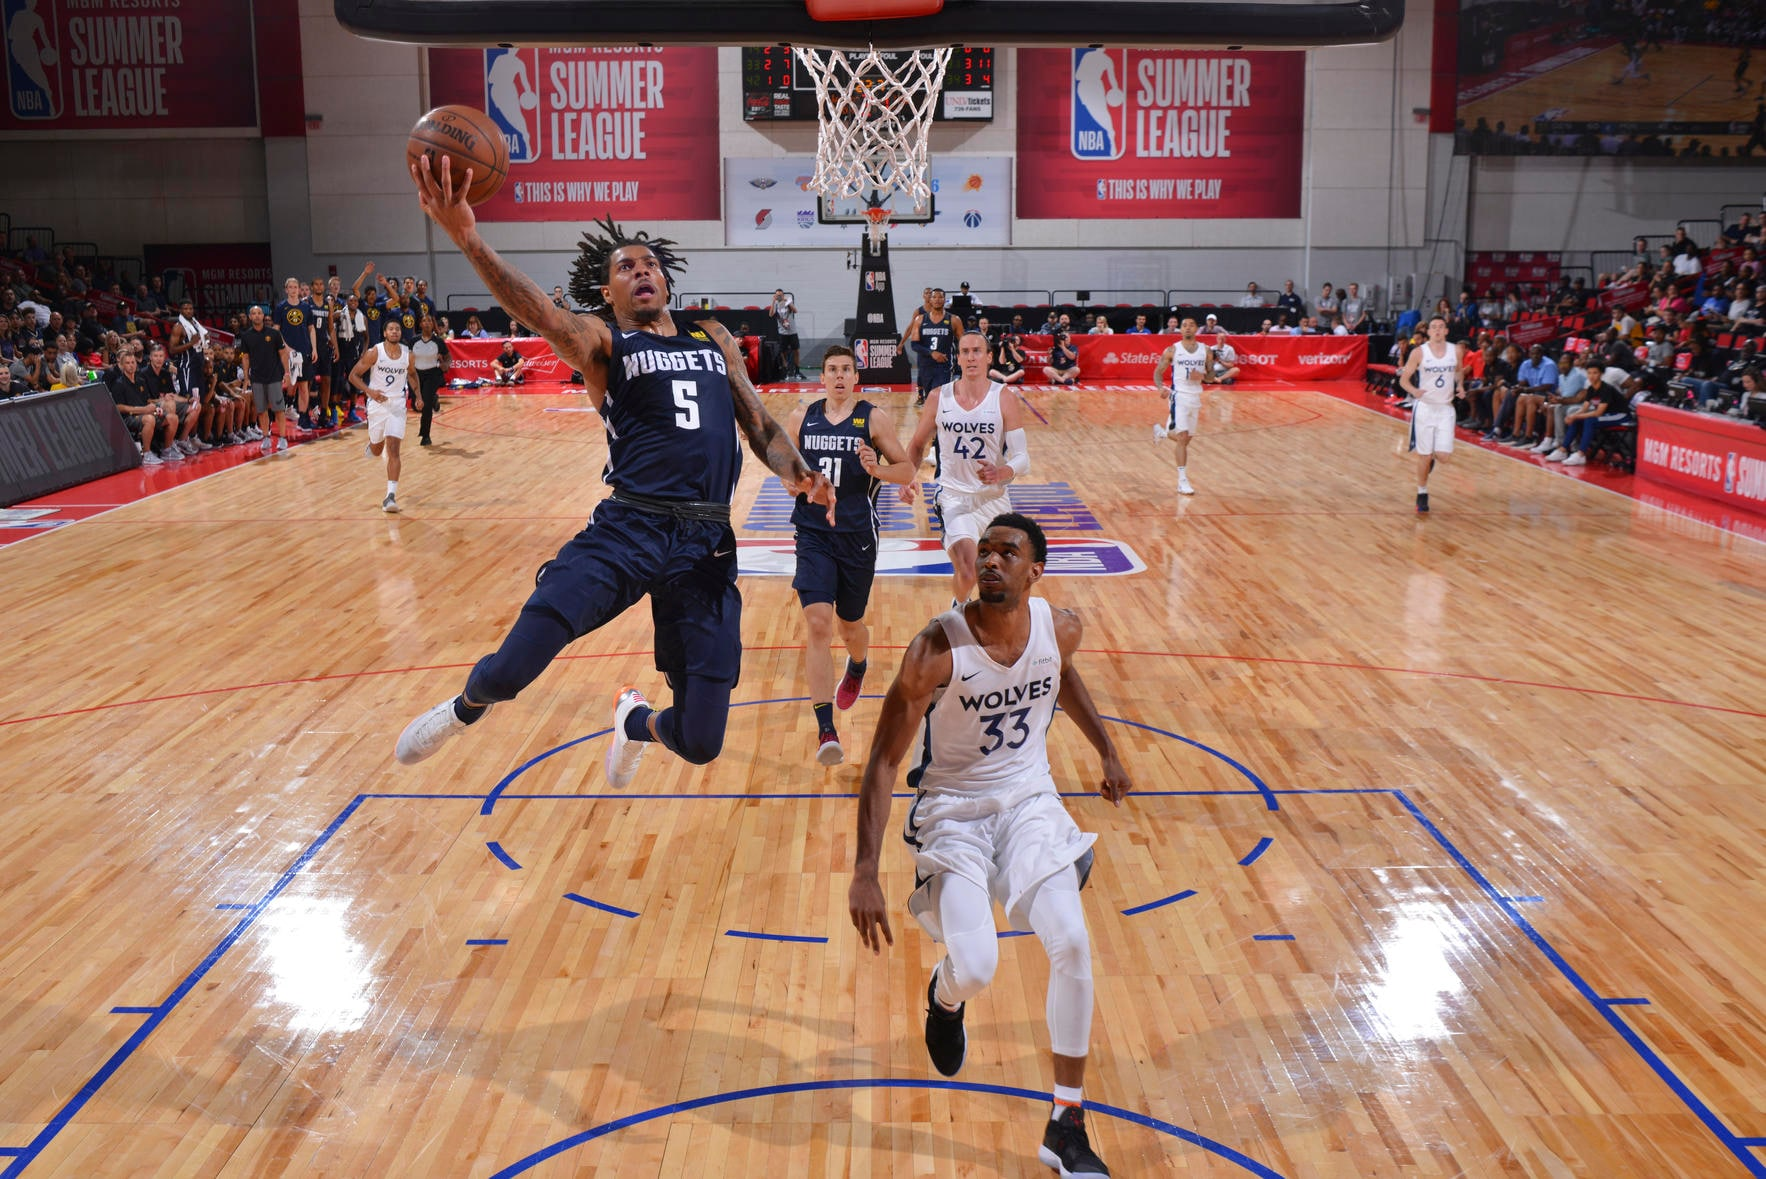 finest selection f78a7 86307 2018-19 Player Previews: DeVaughn Akoon-Purcell & Thomas ...